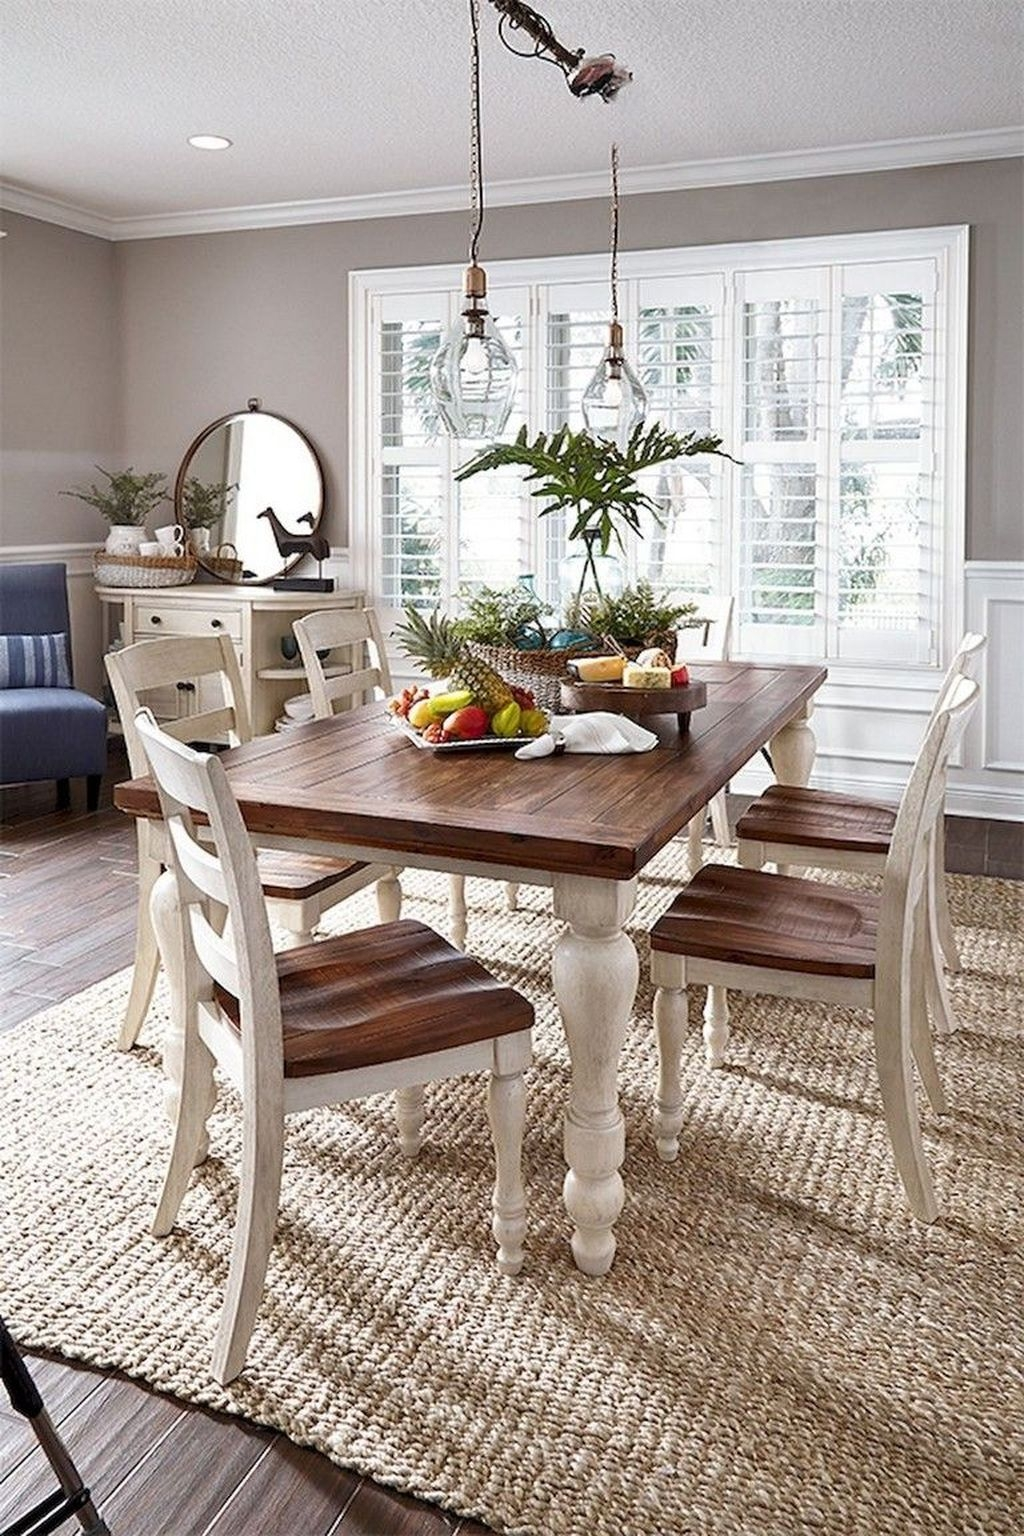 Popular Farmhouse Dining Room Design Ideas Trend 2019 01